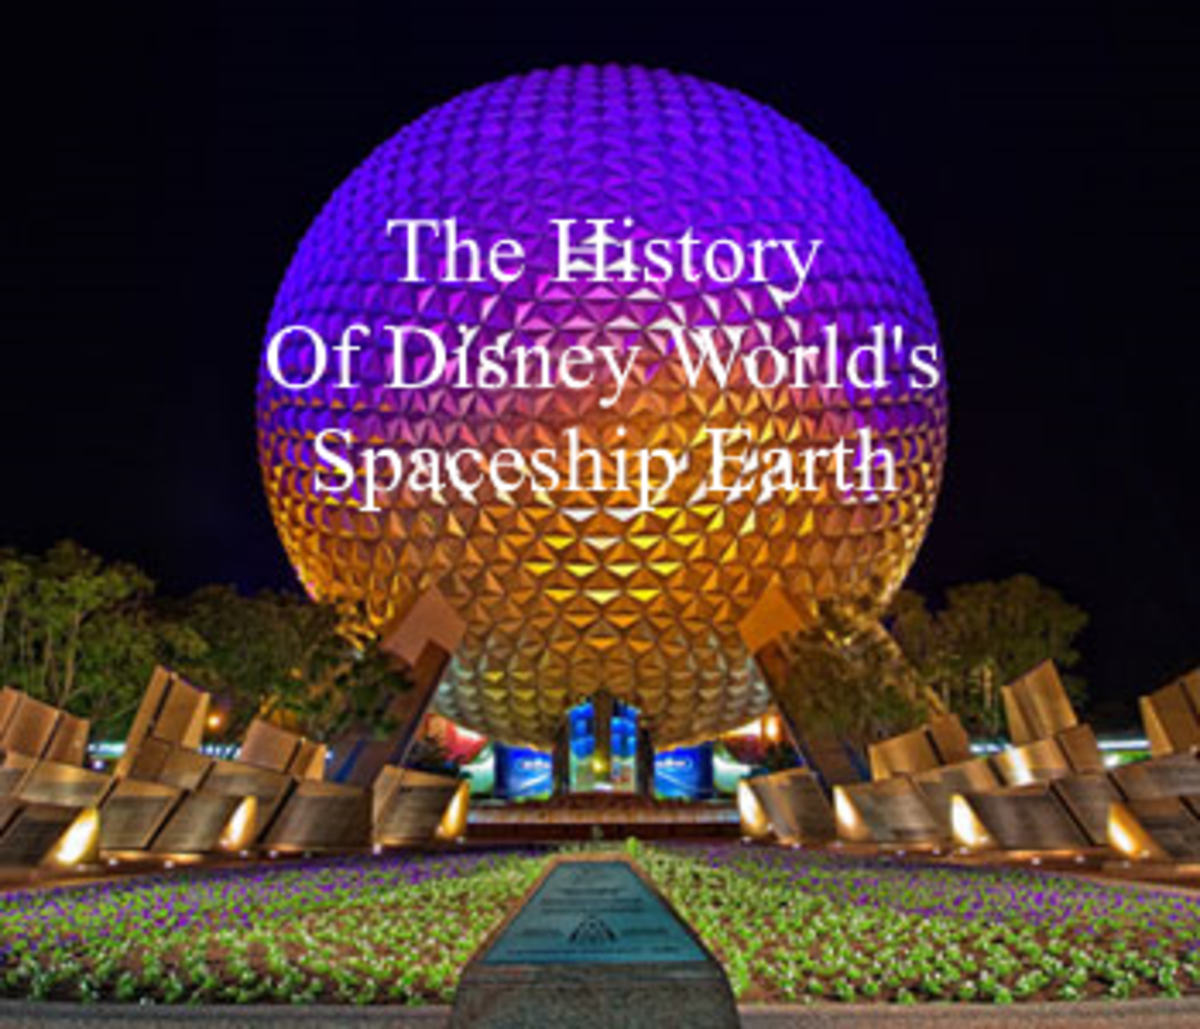 The History of Disney World's Spaceship Earth